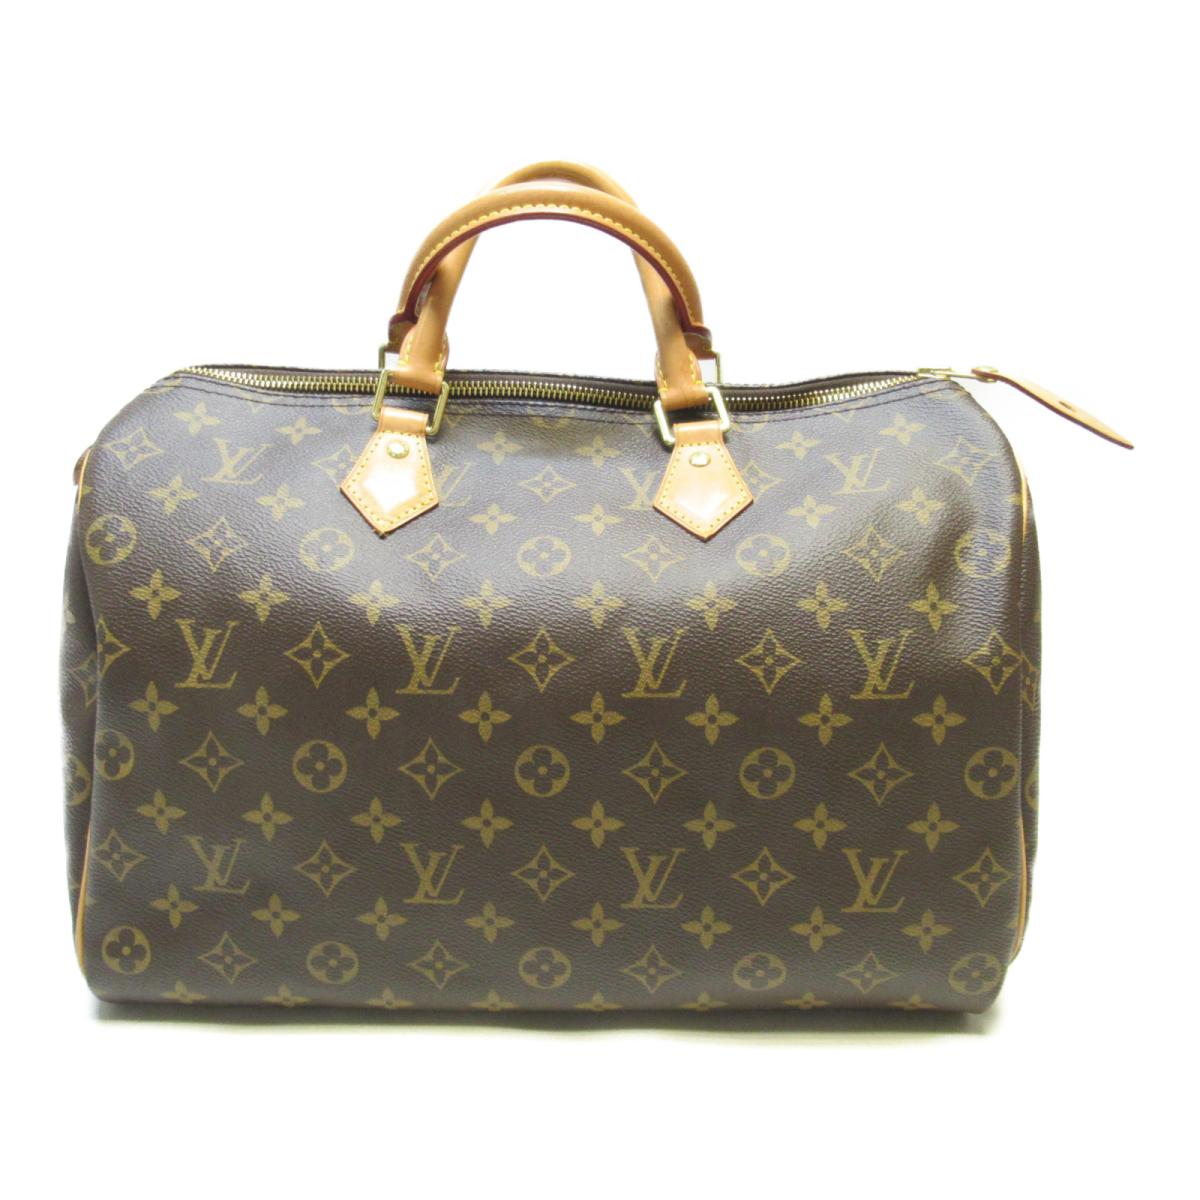 LOUIS VUITTON LV 路易威登 LOUIS VUITTON LV 路易威登 バッグ M41107 原花手提波士頓包 Speedy 35 M41107